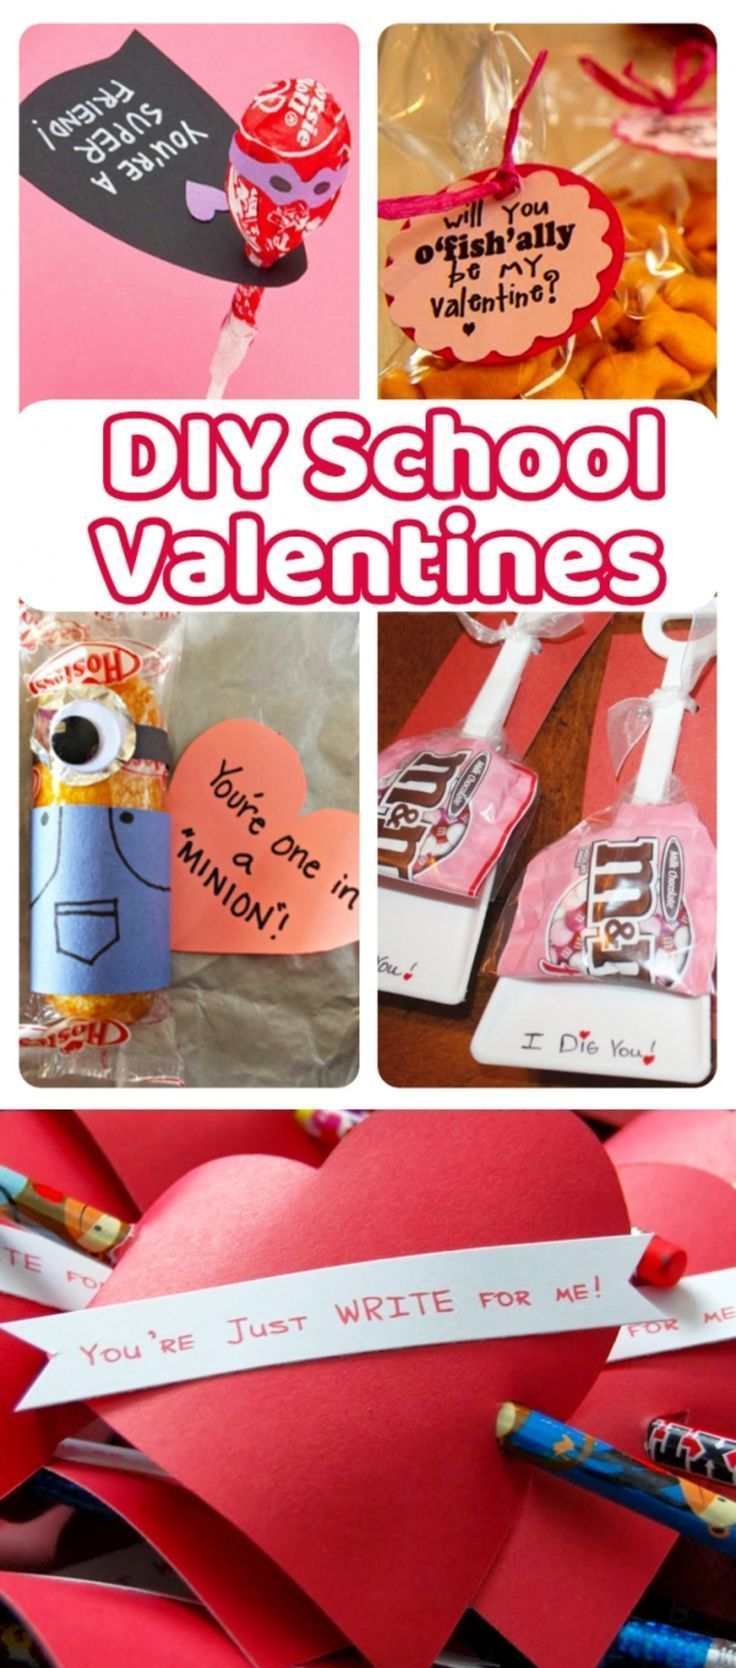 Valentines Day - DIY handmade Valentines Cards for kids to give at school. #teachervalentinegifts #valentinesdayideas #valentinesdaycrafts #valentinecards #diy #craftsforkids #diyprojectsforkids #valentinesday #valentinesdaygiftideas #holidaycraftsforkids